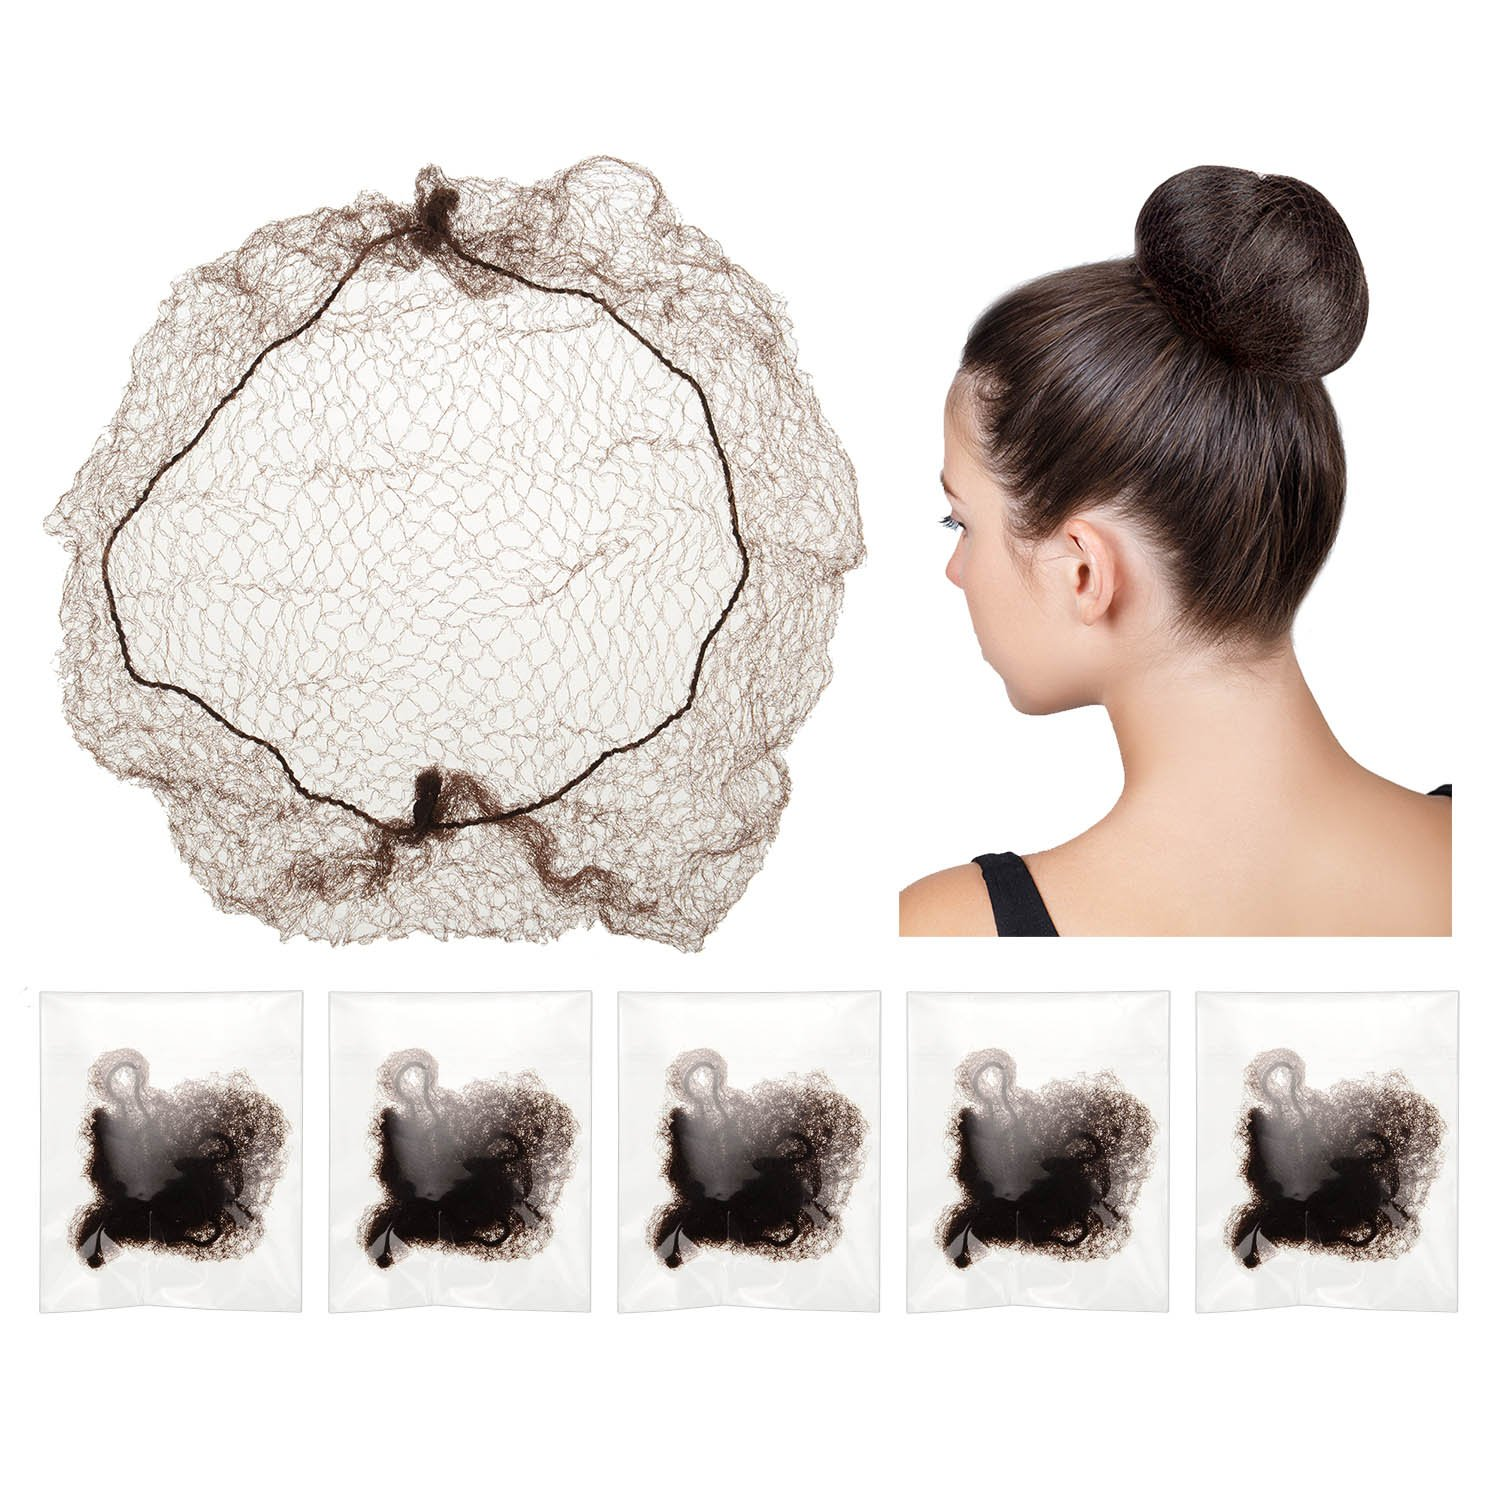 30 Pieces Invisible Hair Nets Elastic Edge Mesh for Wig and Hair Fixing Women's Bun Making, Coffee BBTO